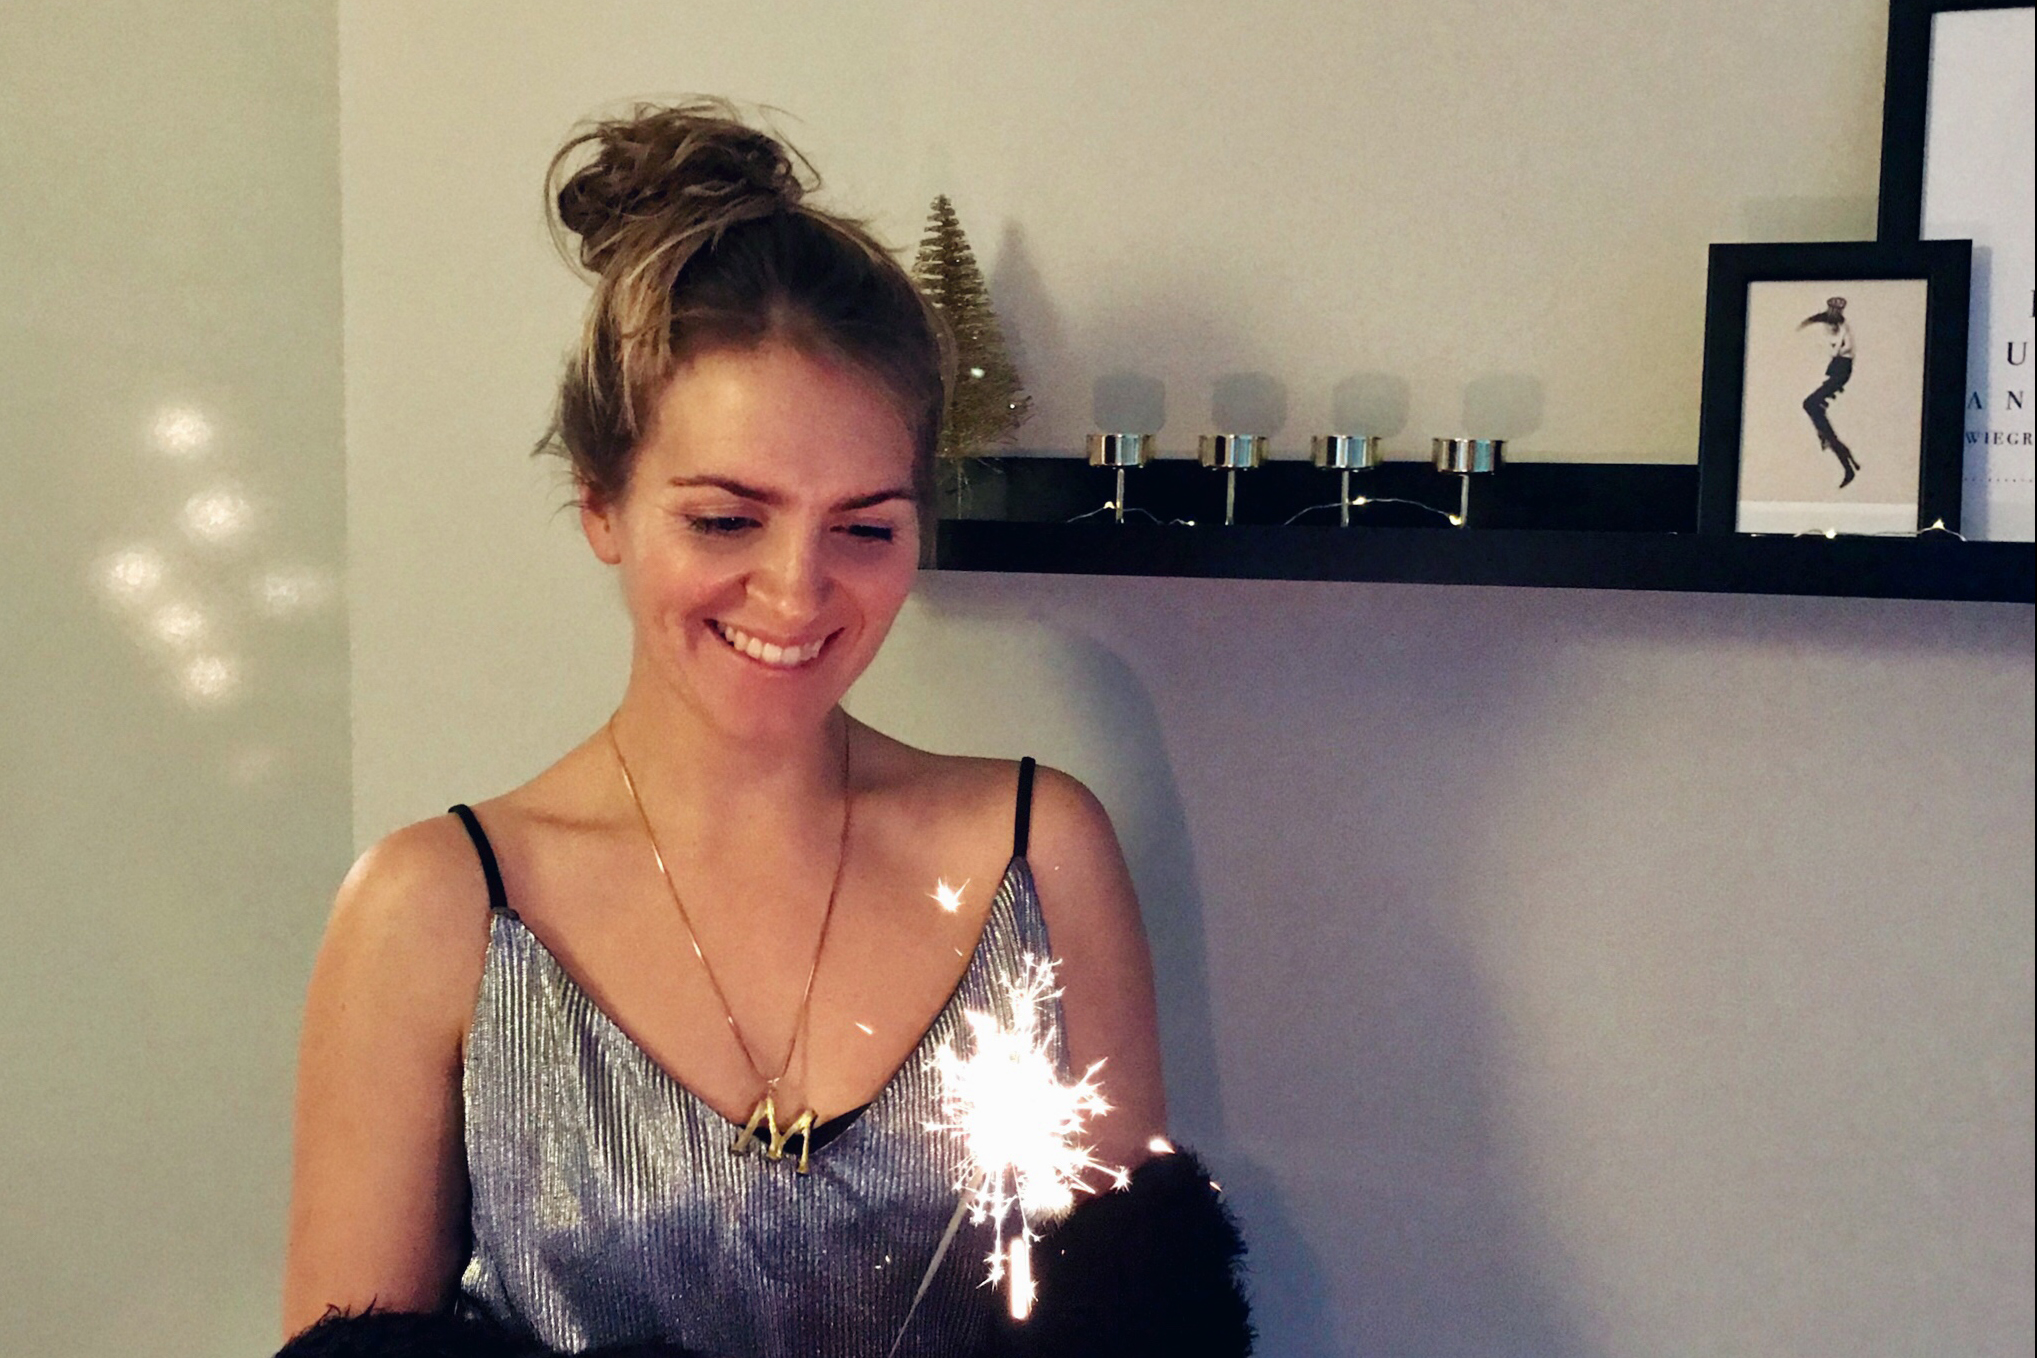 Happy New Year 2019. Fashion Blogger Girl by Style Blog Heartfelt Hunt. Girl with blond, high messy bun wearing a silver pleated dress and a chenille cardigan wishing you a happy New Year for 2019.